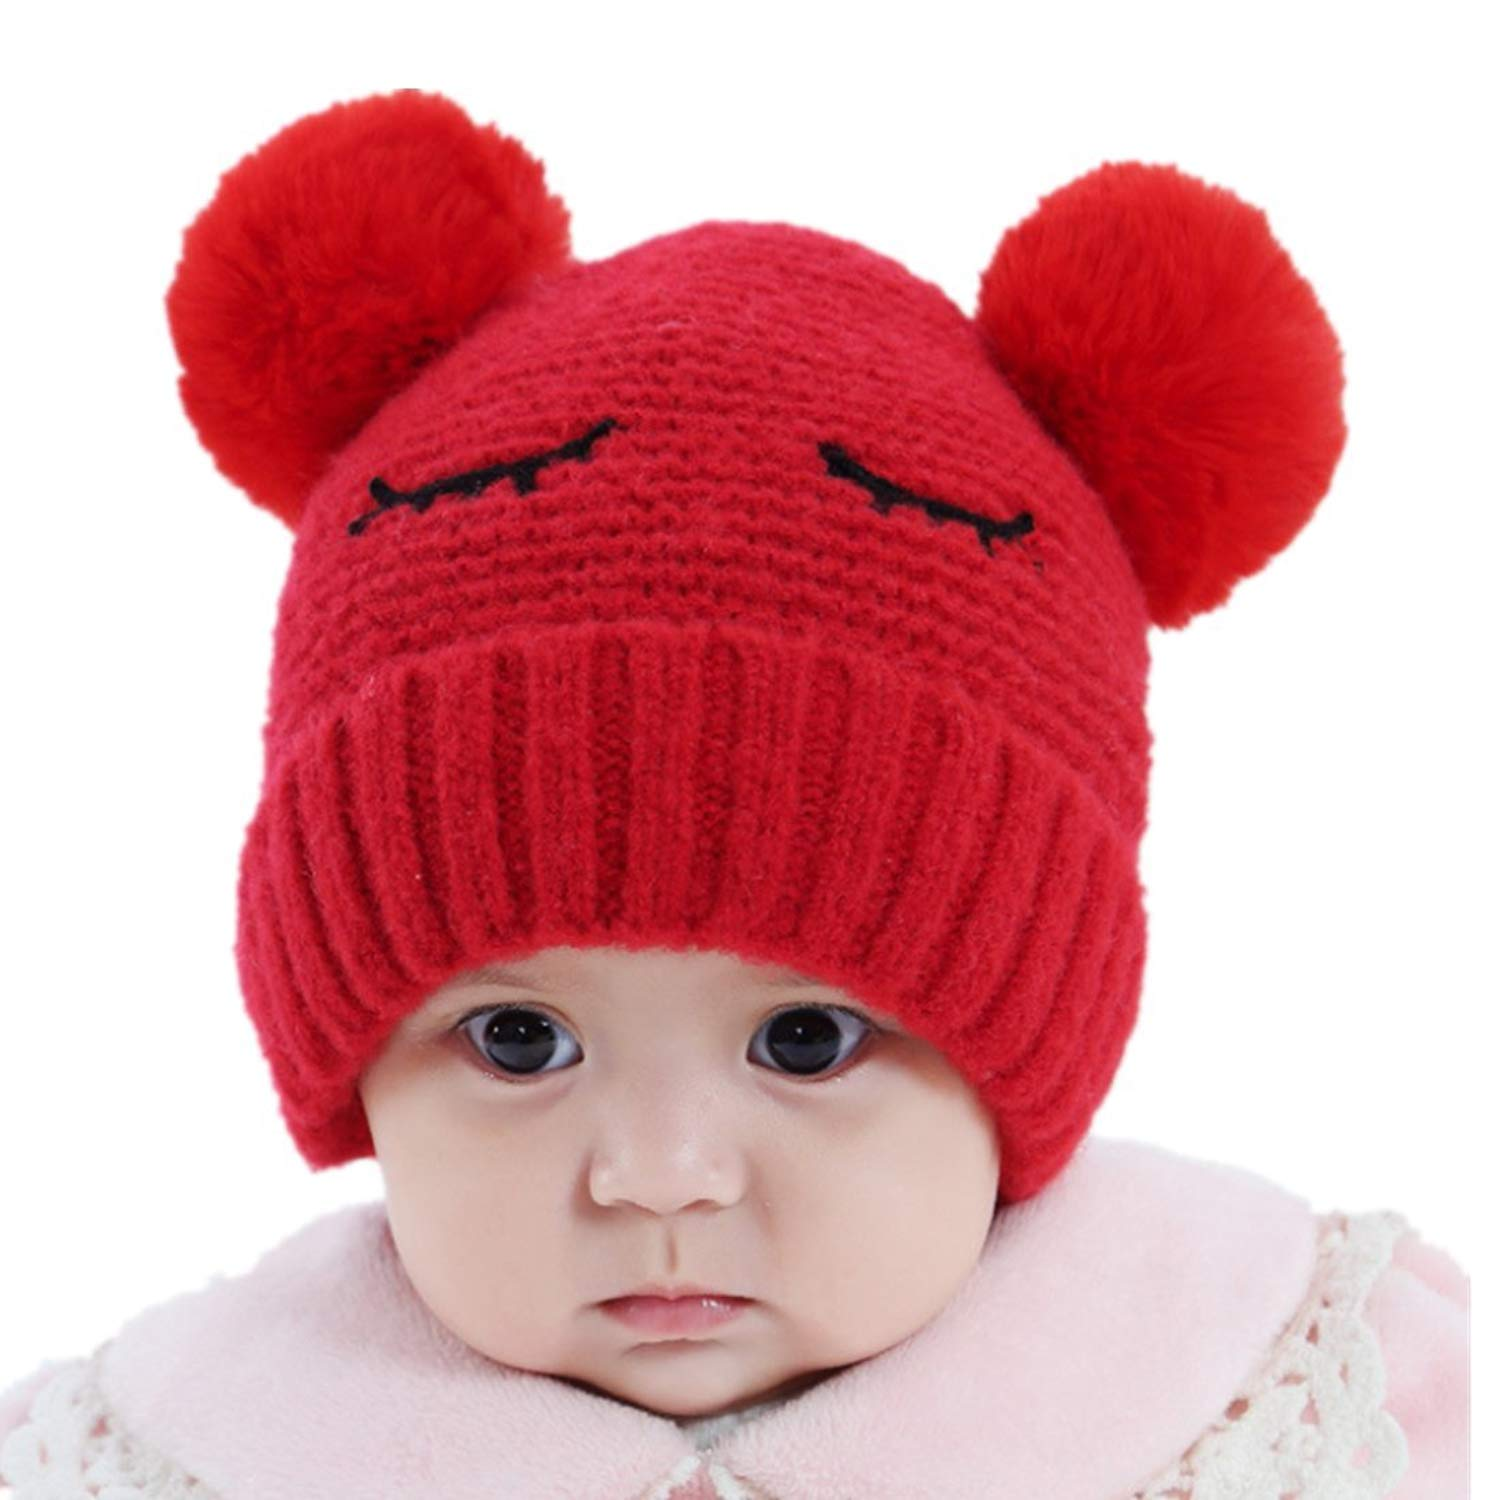 e47e2407da065 Get Quotations · Zerowin Baby Boys Girls Pompom Hat Props Crochet Knitted  Double Pom Pom Hat Bear Beanie Wool